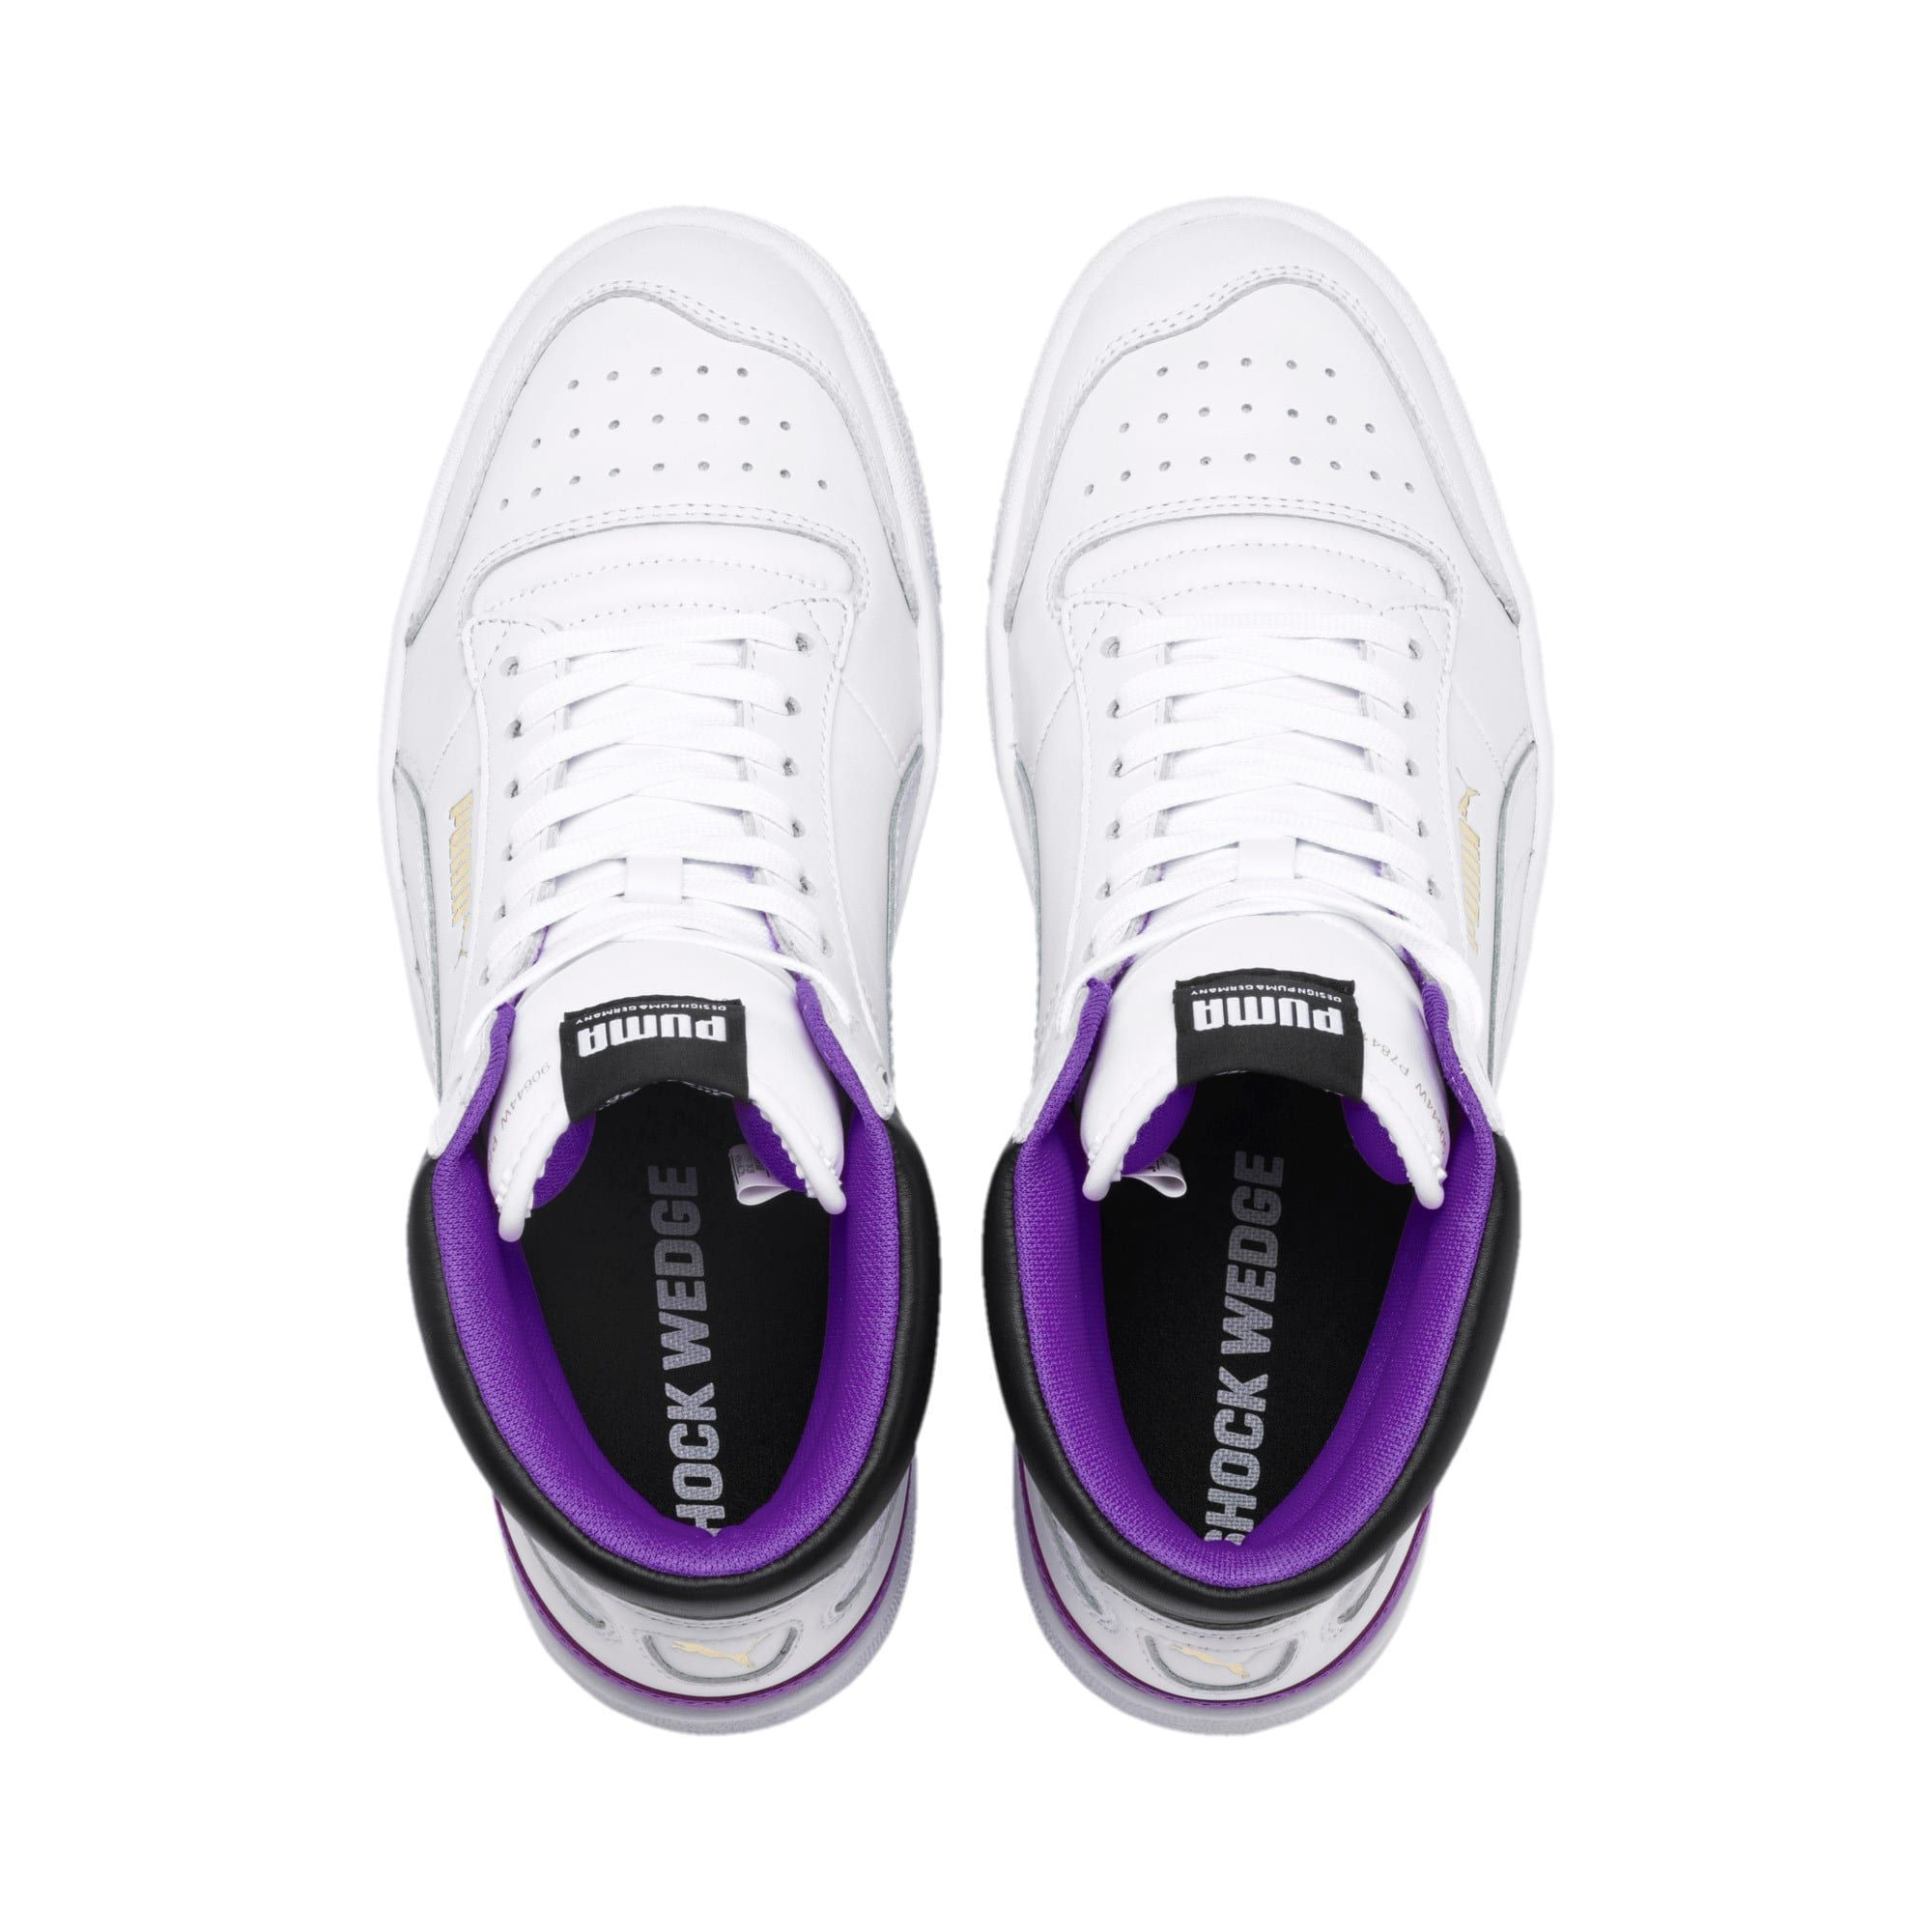 Photo of Ralph Sampson Mid Zapatillas deportivas | PWhite-PWhite-Purple Glimmer | PUMA Destacado | PUMA Reino Unido